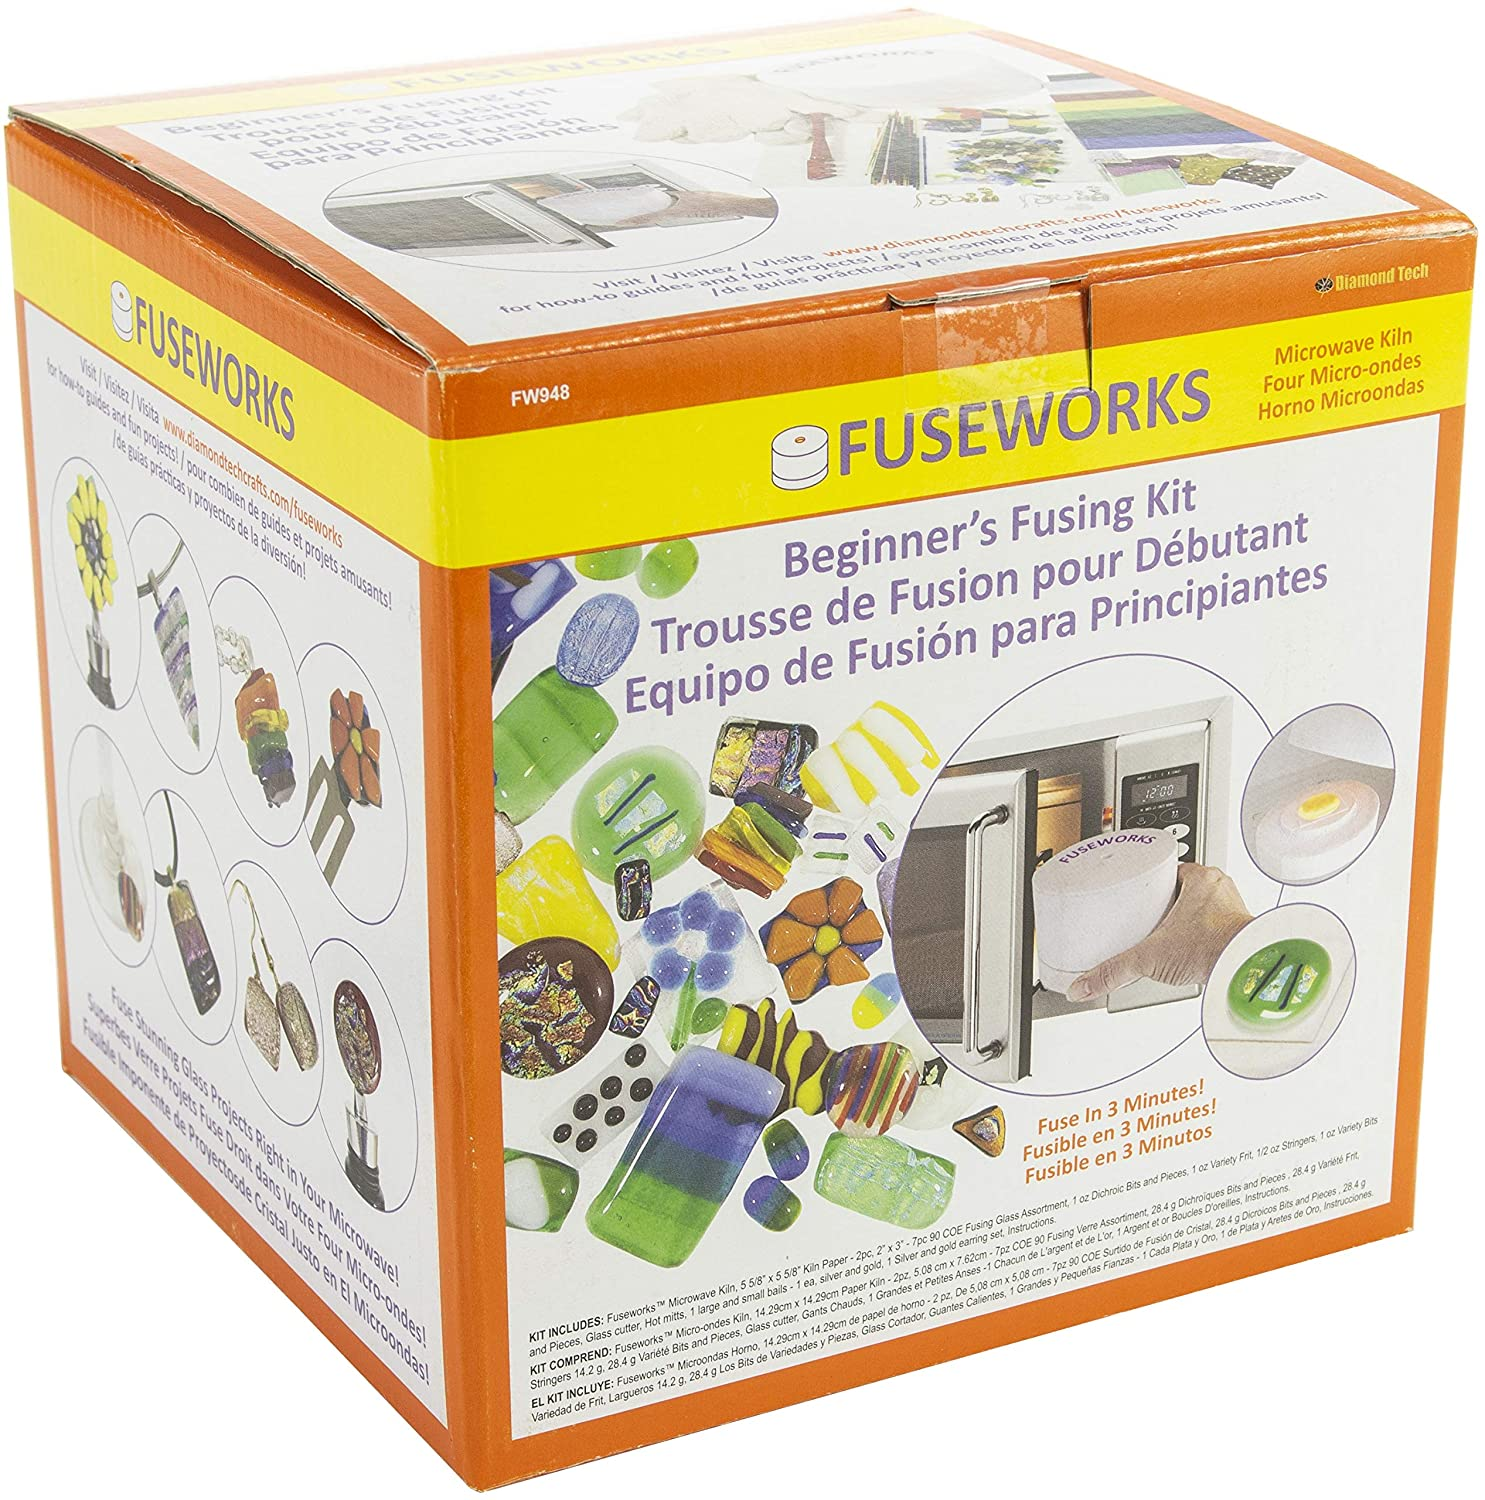 Amazon.com: Fuseworks Beginners Fusing Kit: Kitchen & Dining